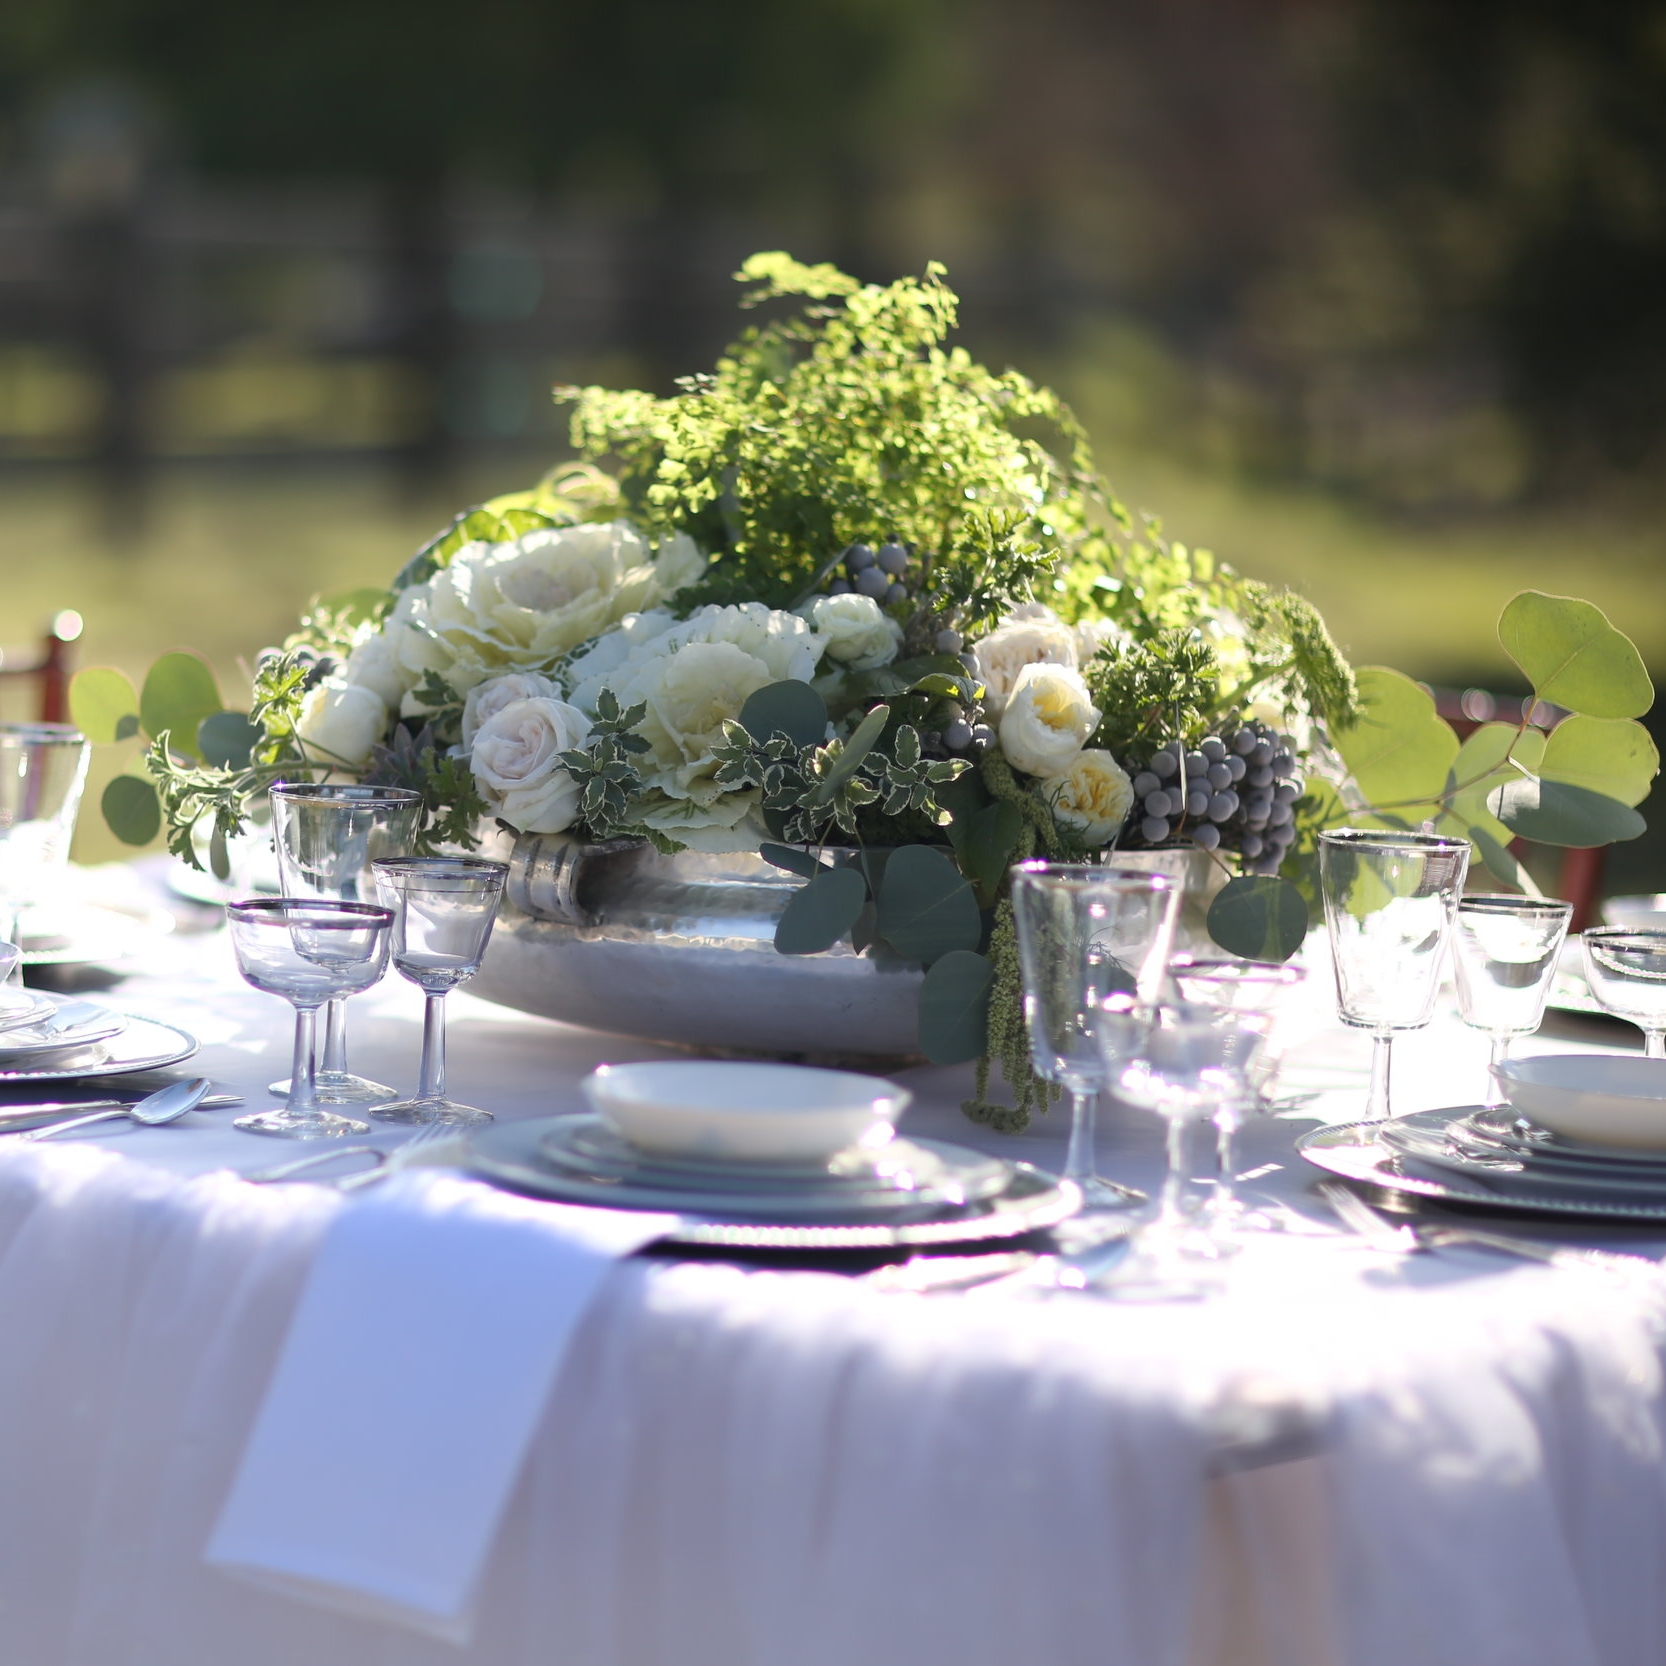 Very large round shiny silver container or floral container on wedding guest table with silver china and goblets